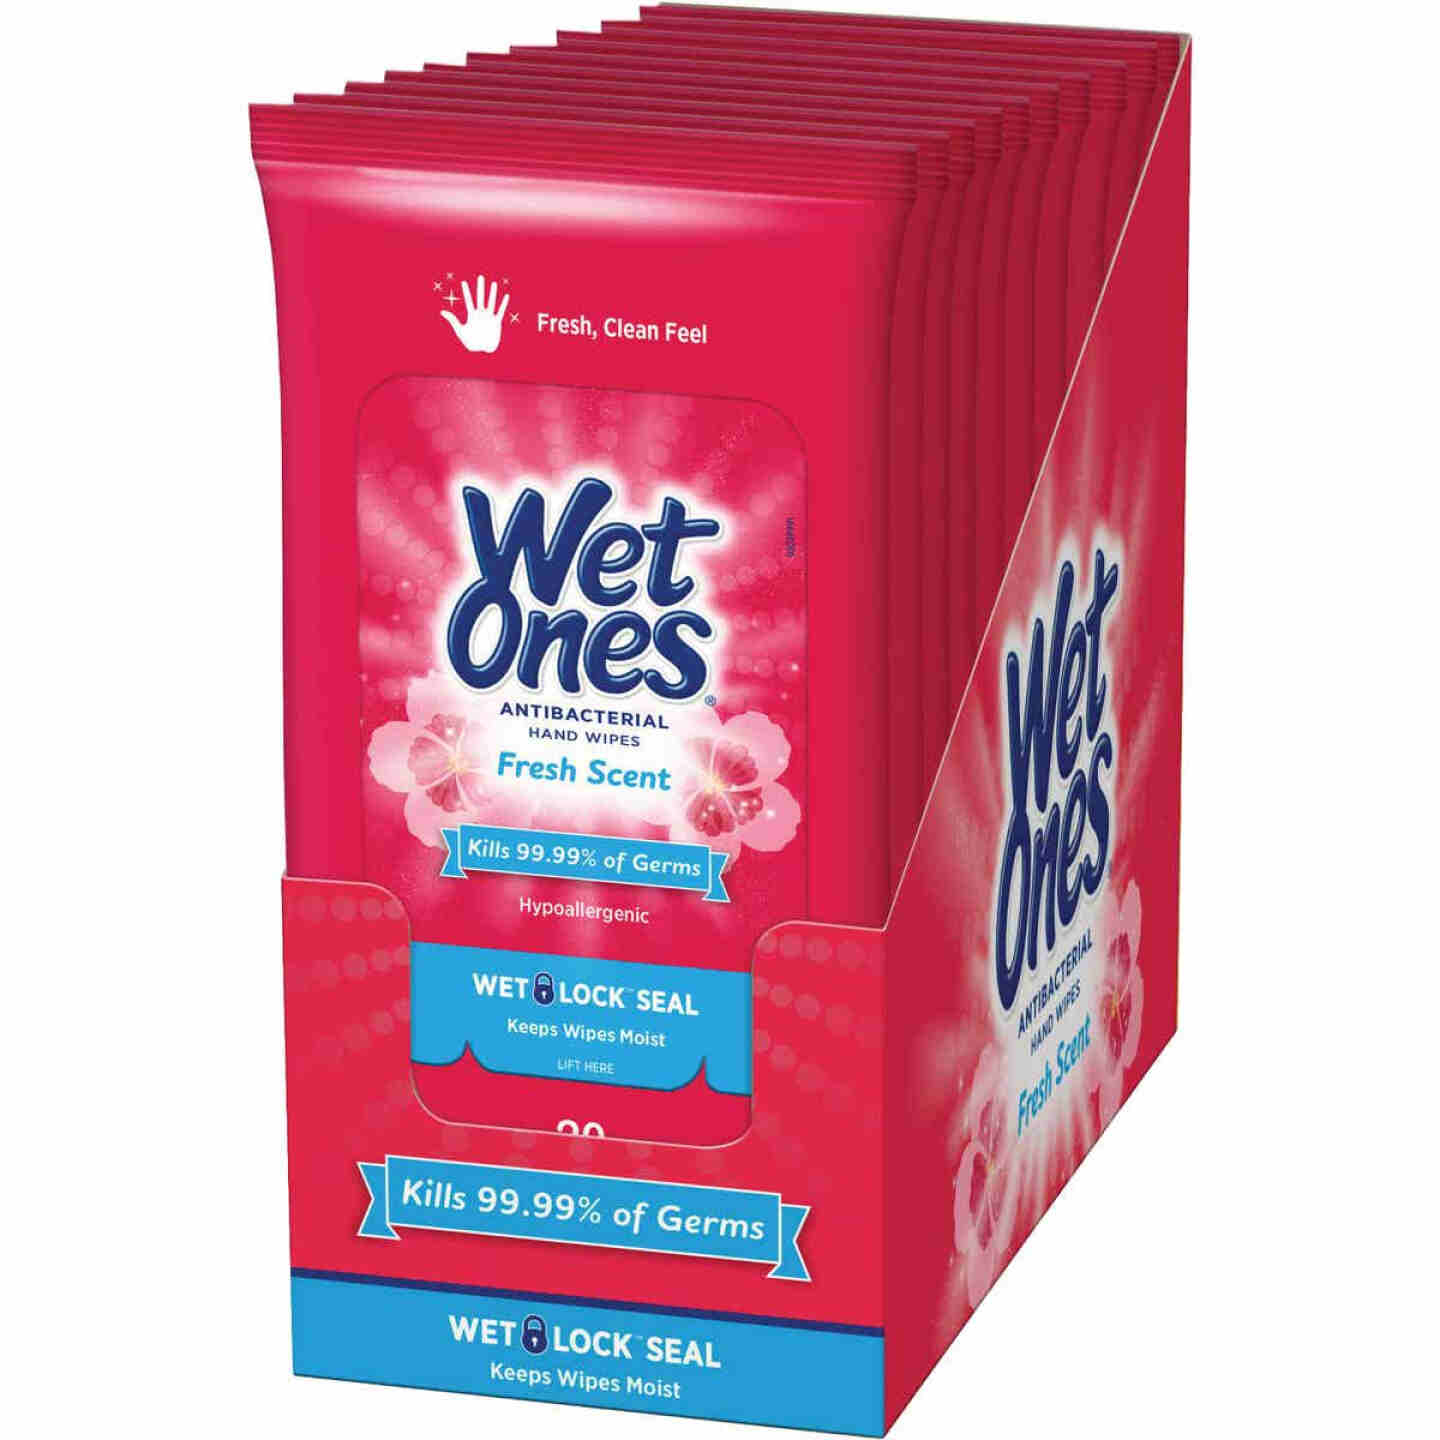 Wet Ones Fresh Scent Antibacterial Disinfectant Individual Hand Cleaning Wipes (20-Count) Image 2